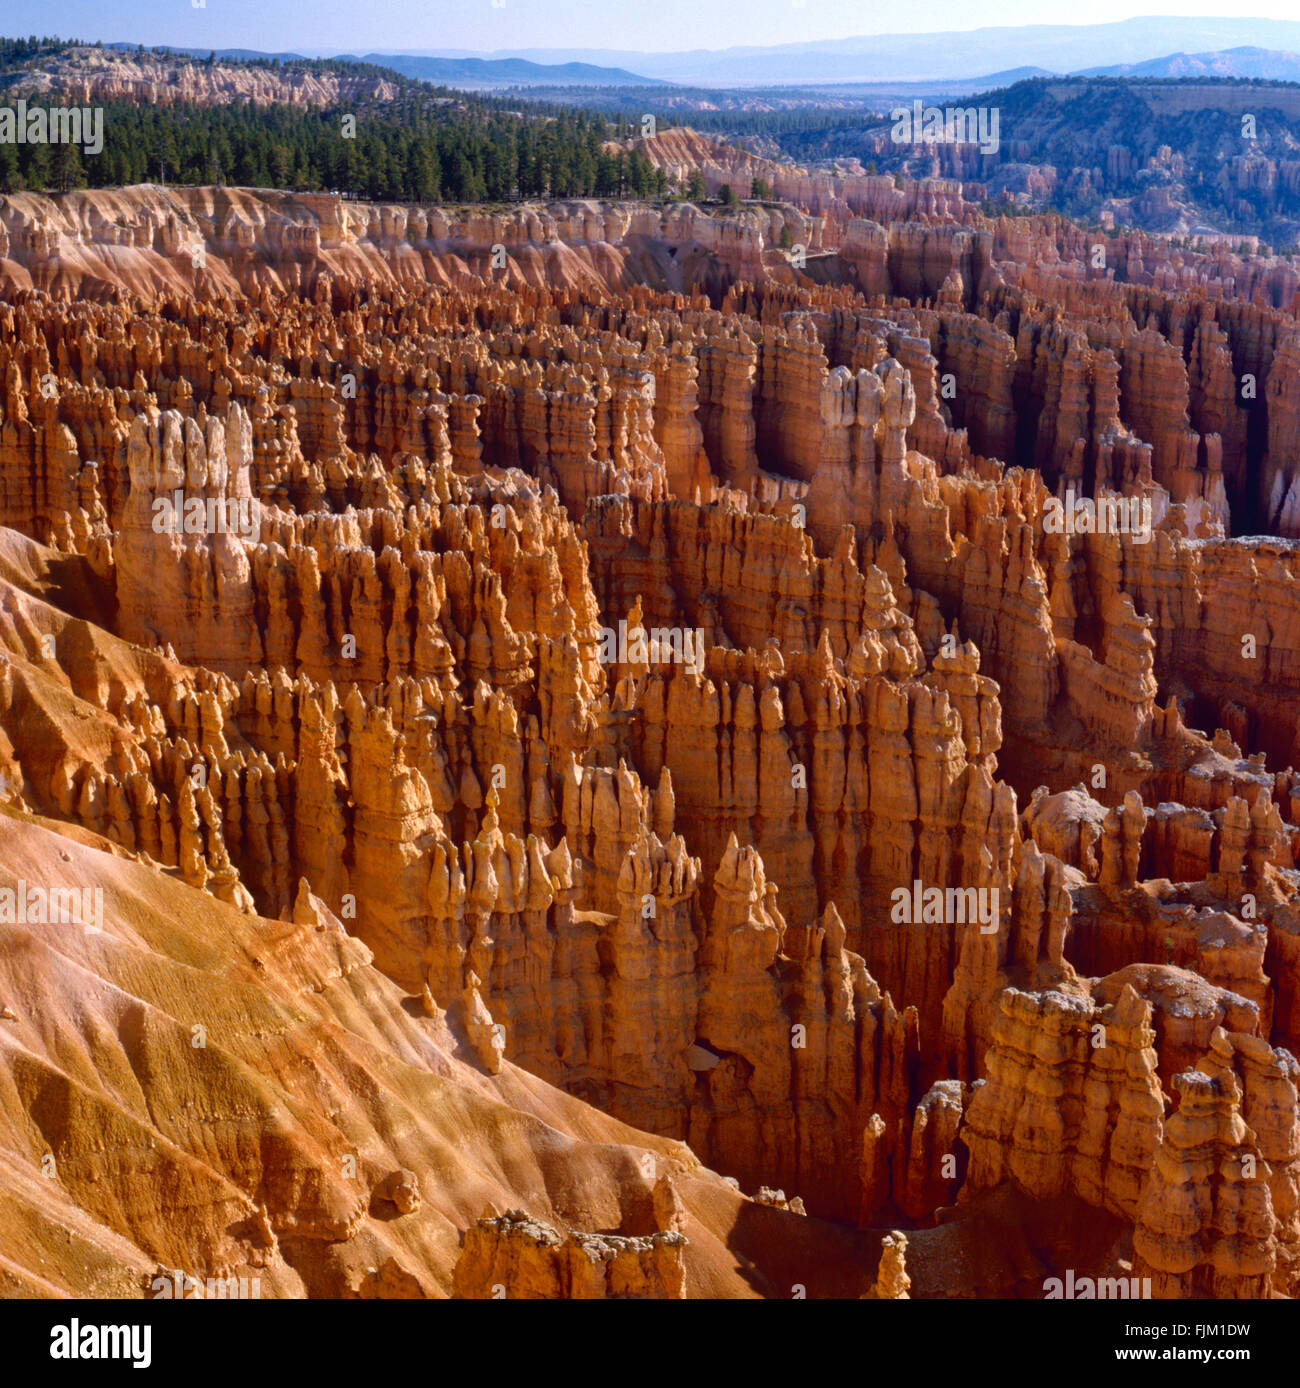 View at Bryce Canyon National Park, Utah. - Stock Image